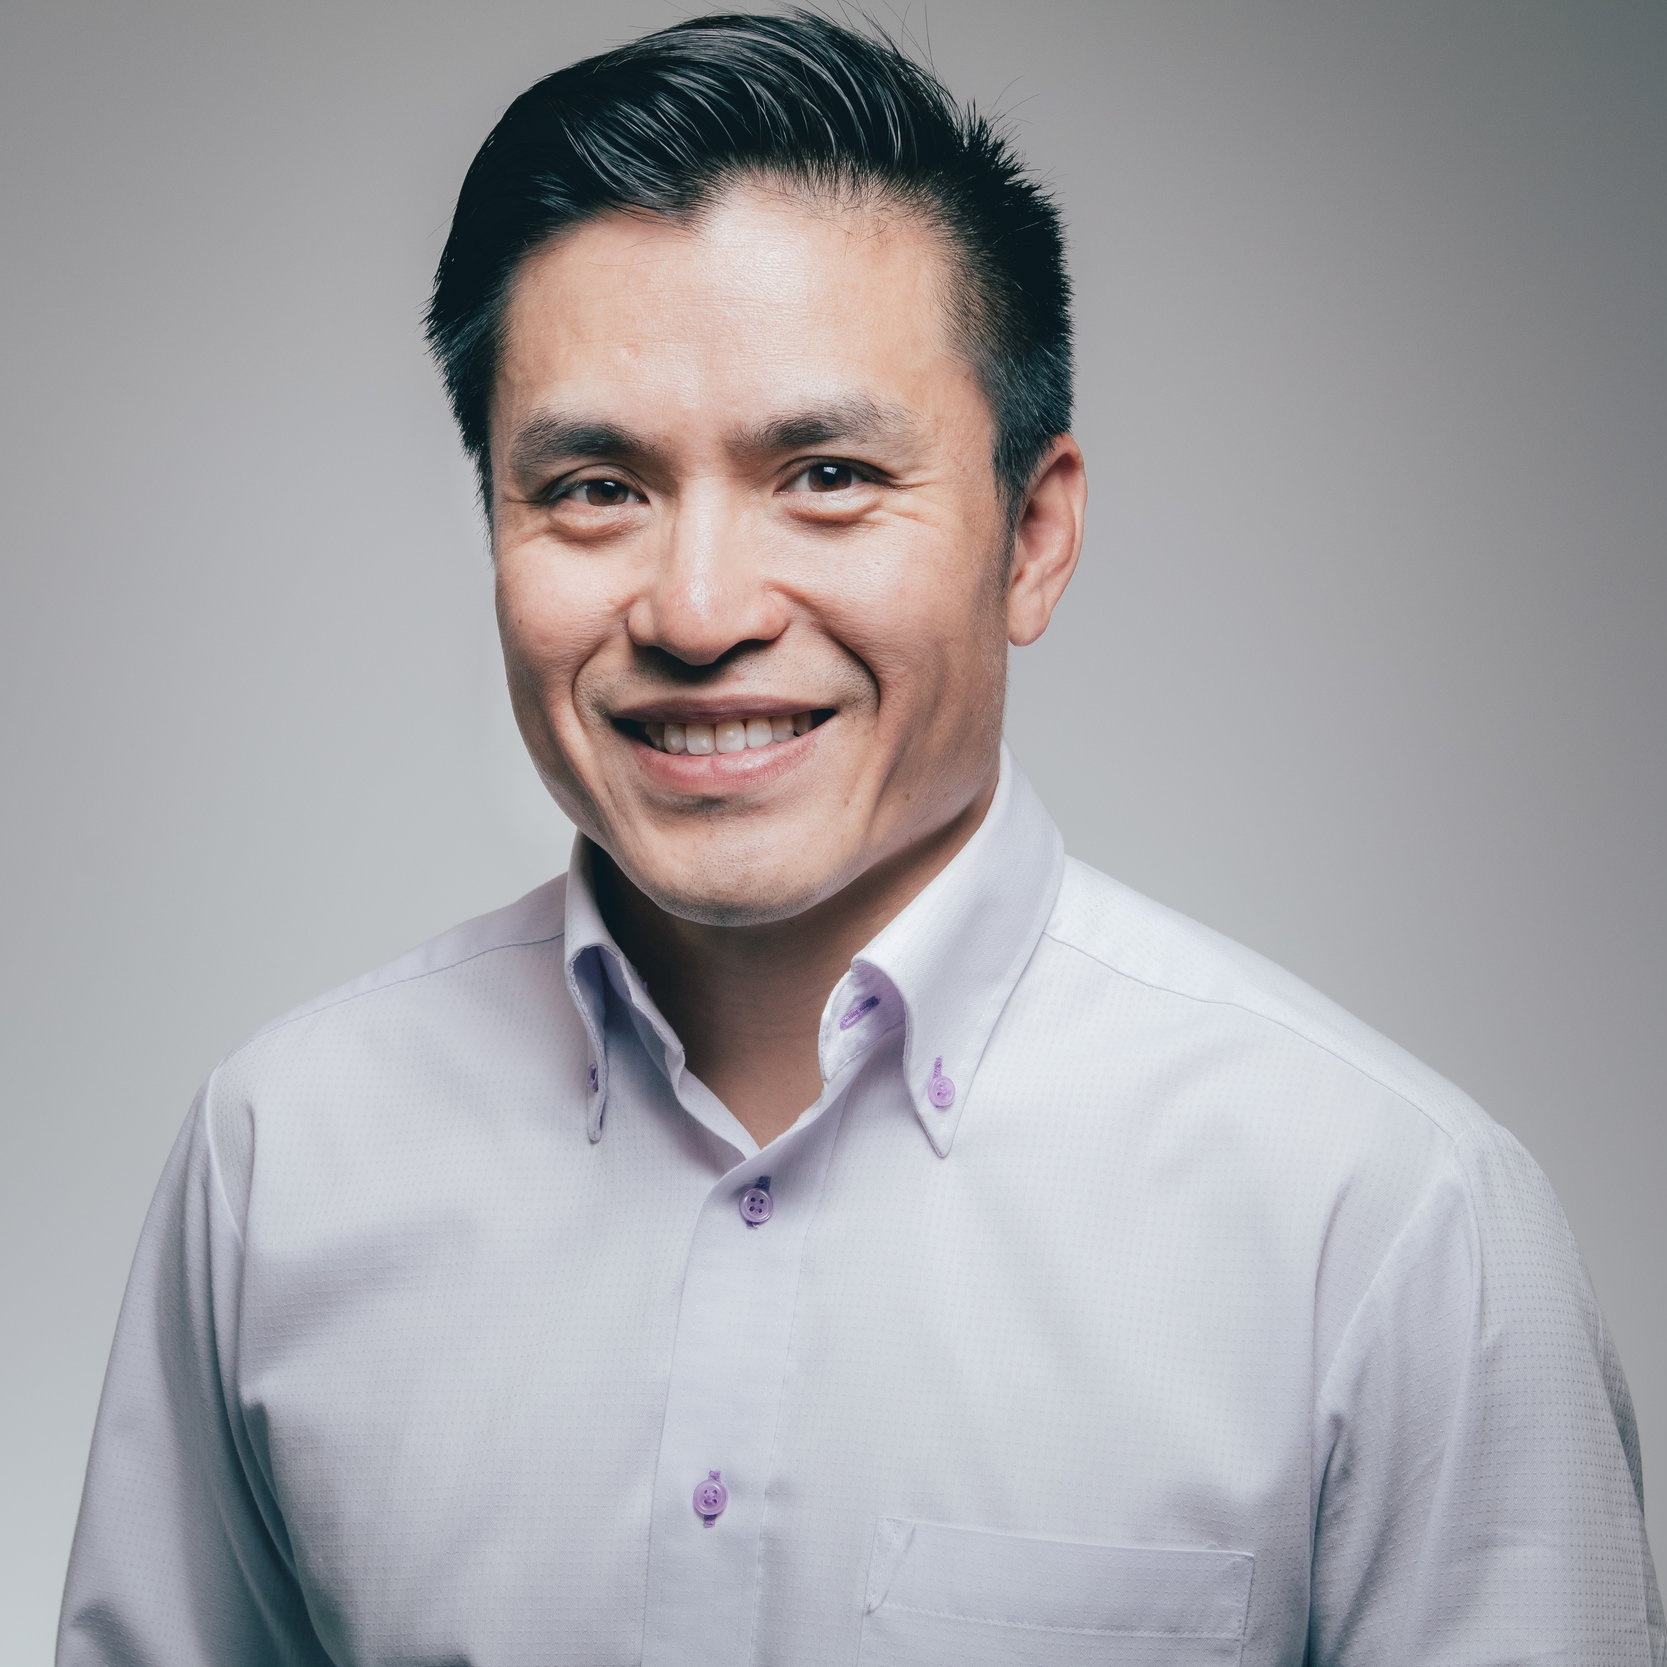 Andy M Tran - Andy is a highly sought after designer and consultant for second suites in the Greater Toronto Area. He is an advocate and influential voice for urban intensification. Andy's company, Suite Additions, has designed over 160 legal second suite conversion projects.